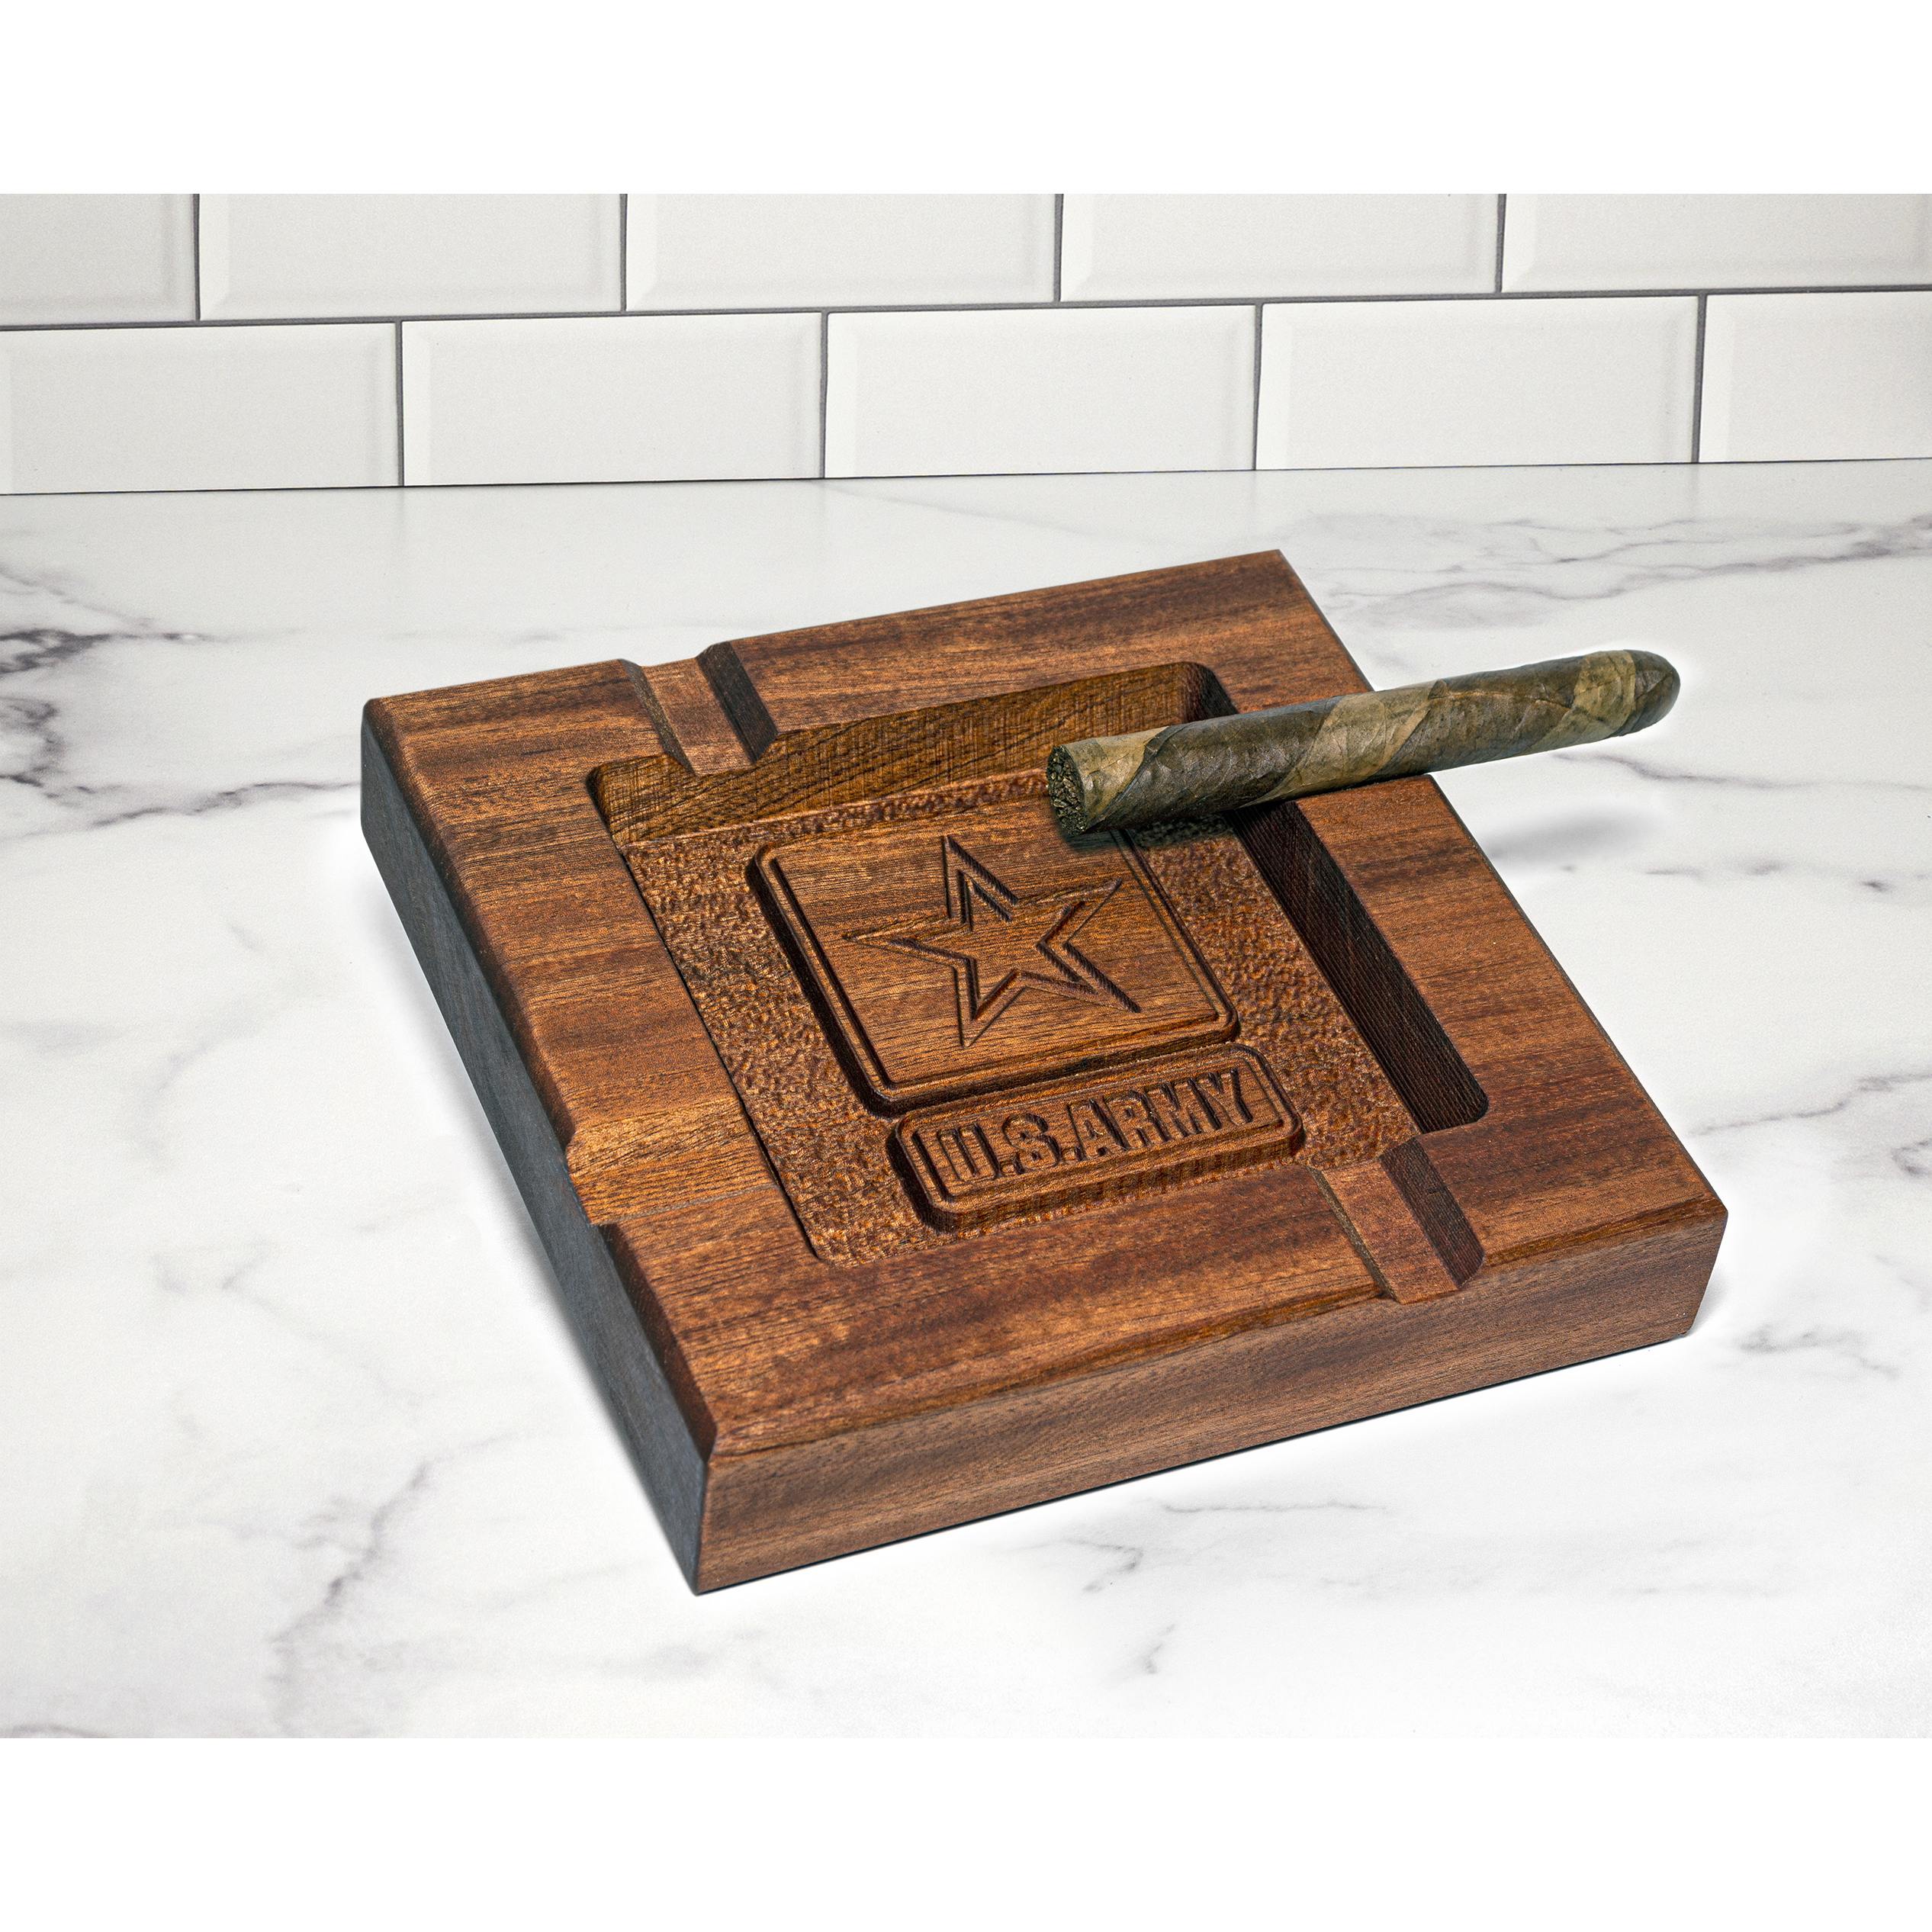 Unique Gifts for Military Veterans